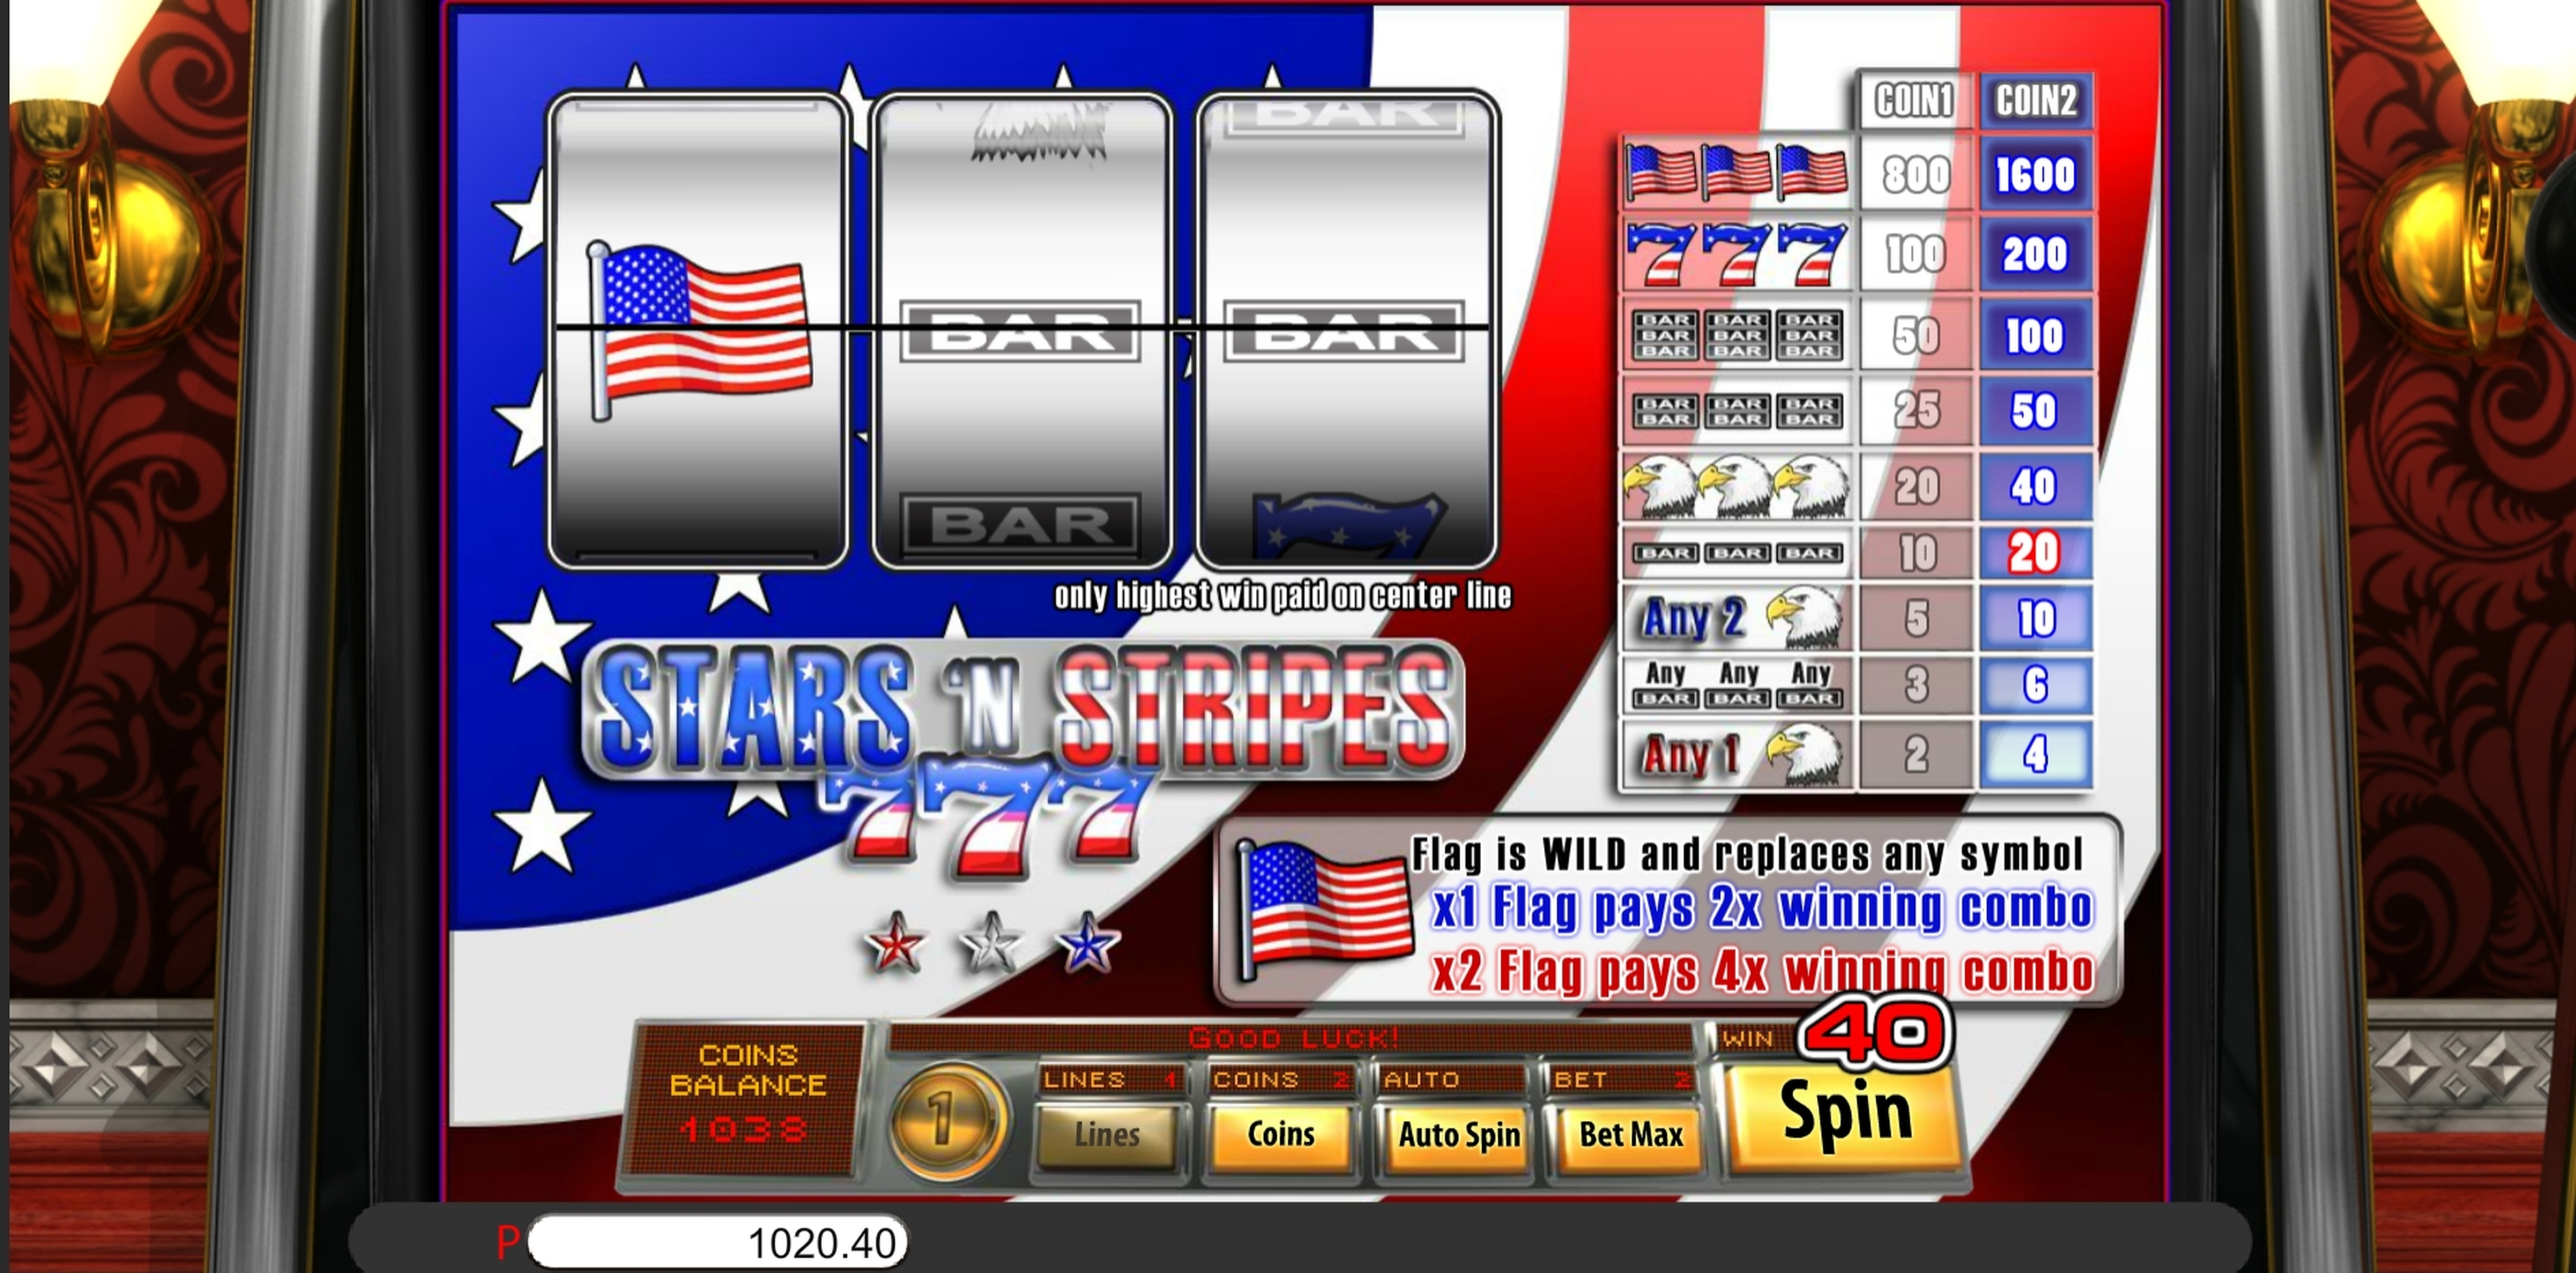 Win Money in Stars And Stripes Free Slot Game by Saucify